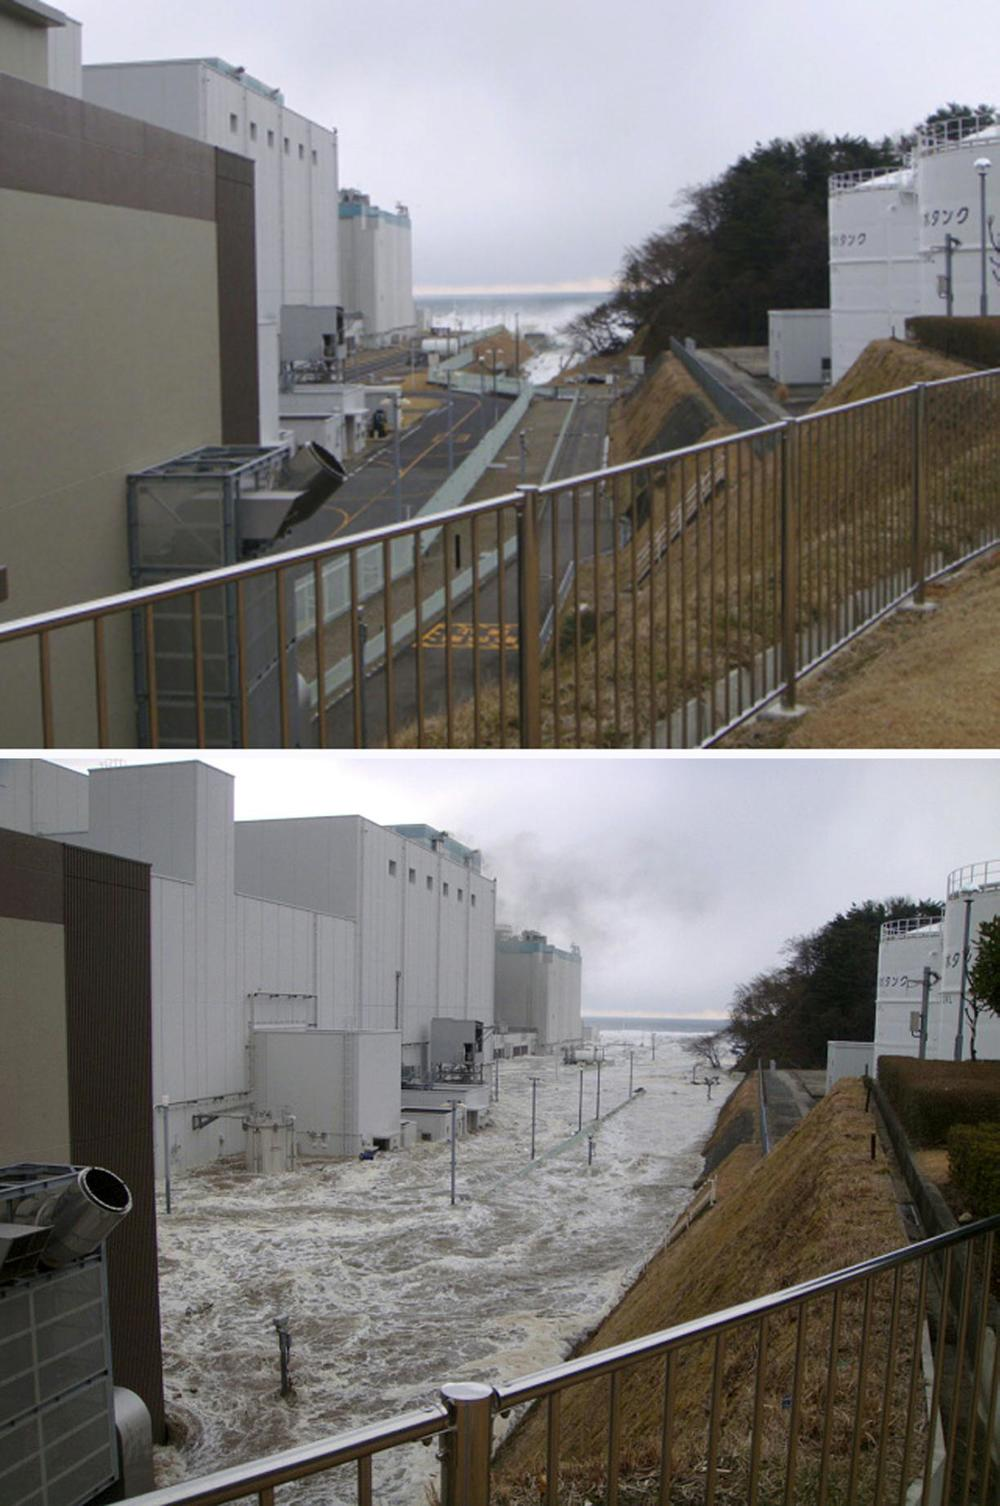 1 water rushing into the Fukushima nuclear reactor during the March 11 tsunami b.jpg